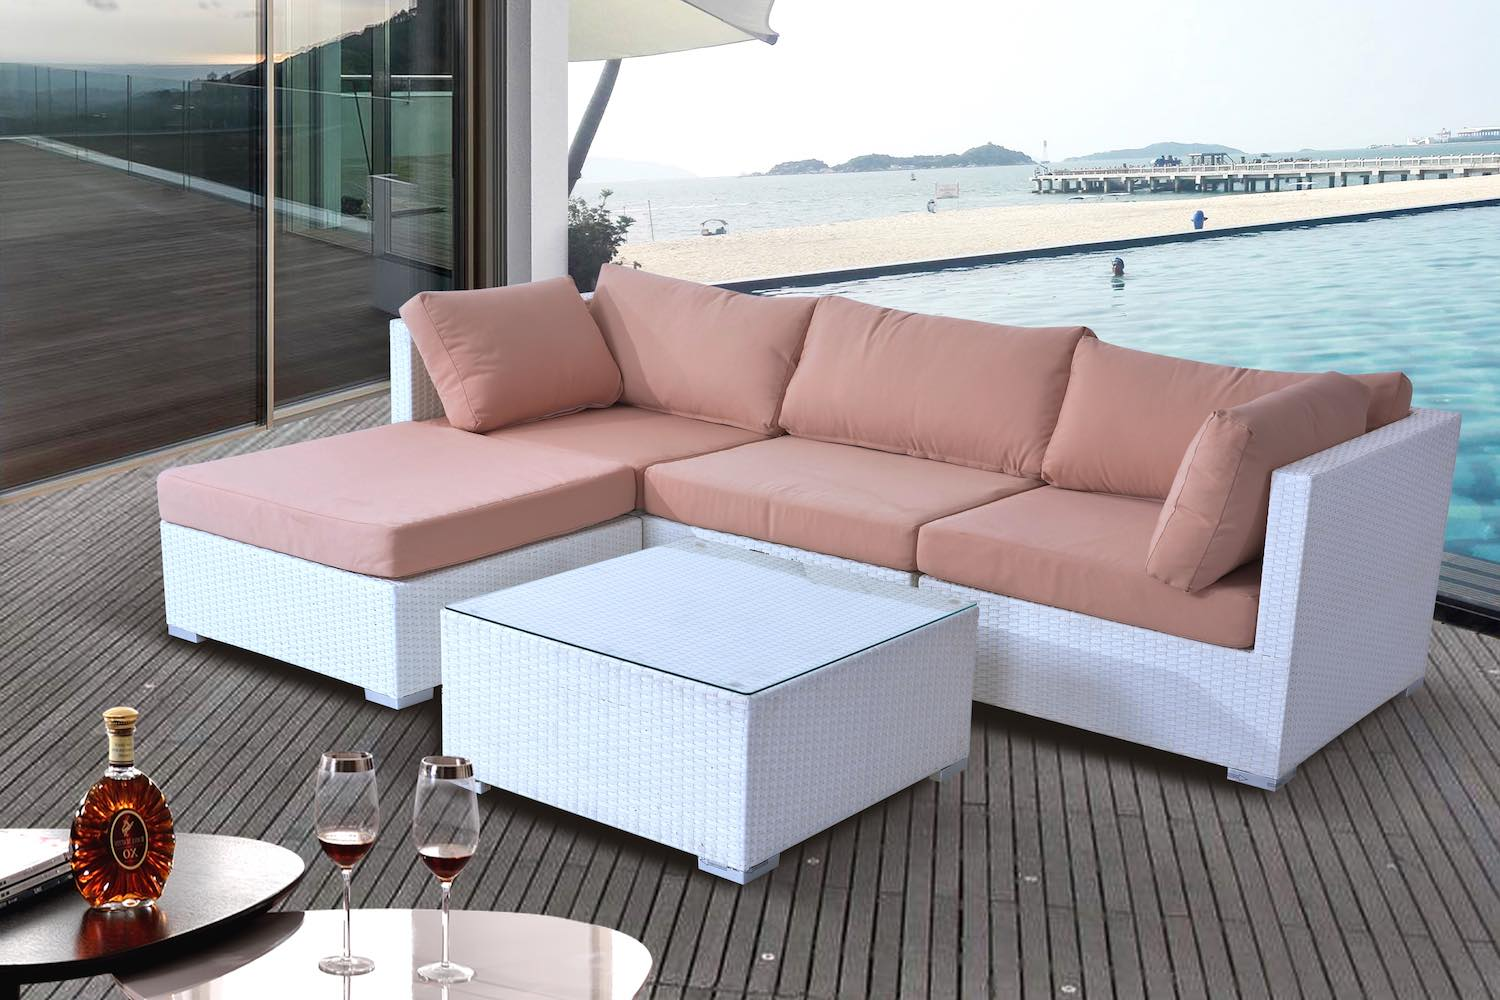 White wicker sectional sofa set patio furniture by velago